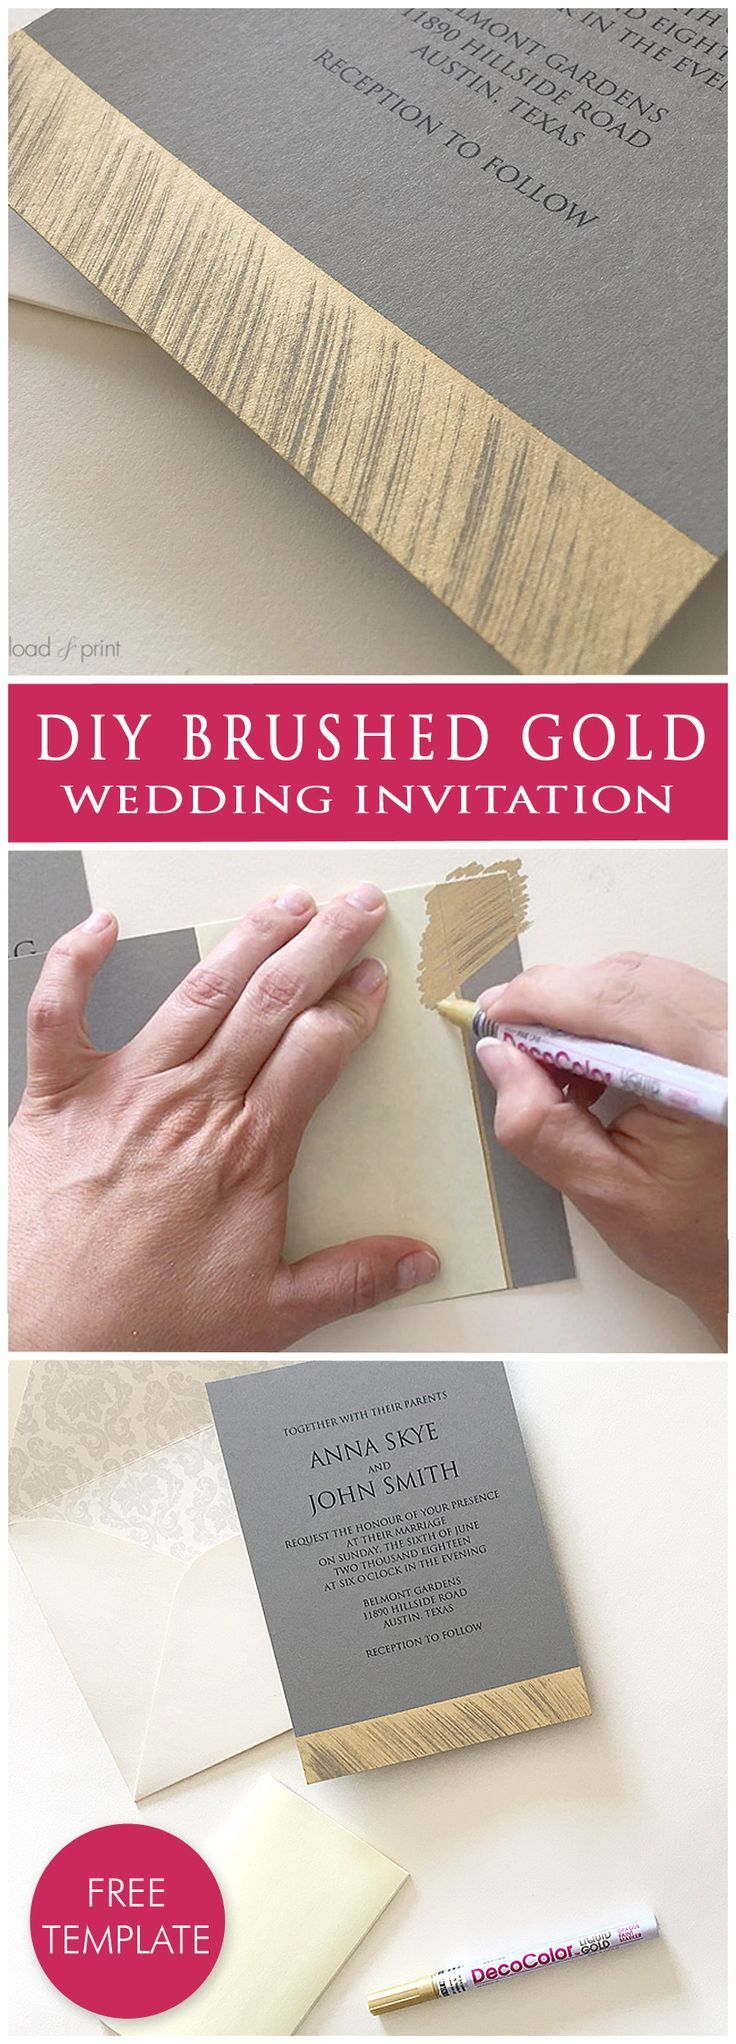 Diy brushed gold wedding invitation learn how to easily create a diy brushed gold wedding invitation learn how to easily create a faux foil look solutioingenieria Images